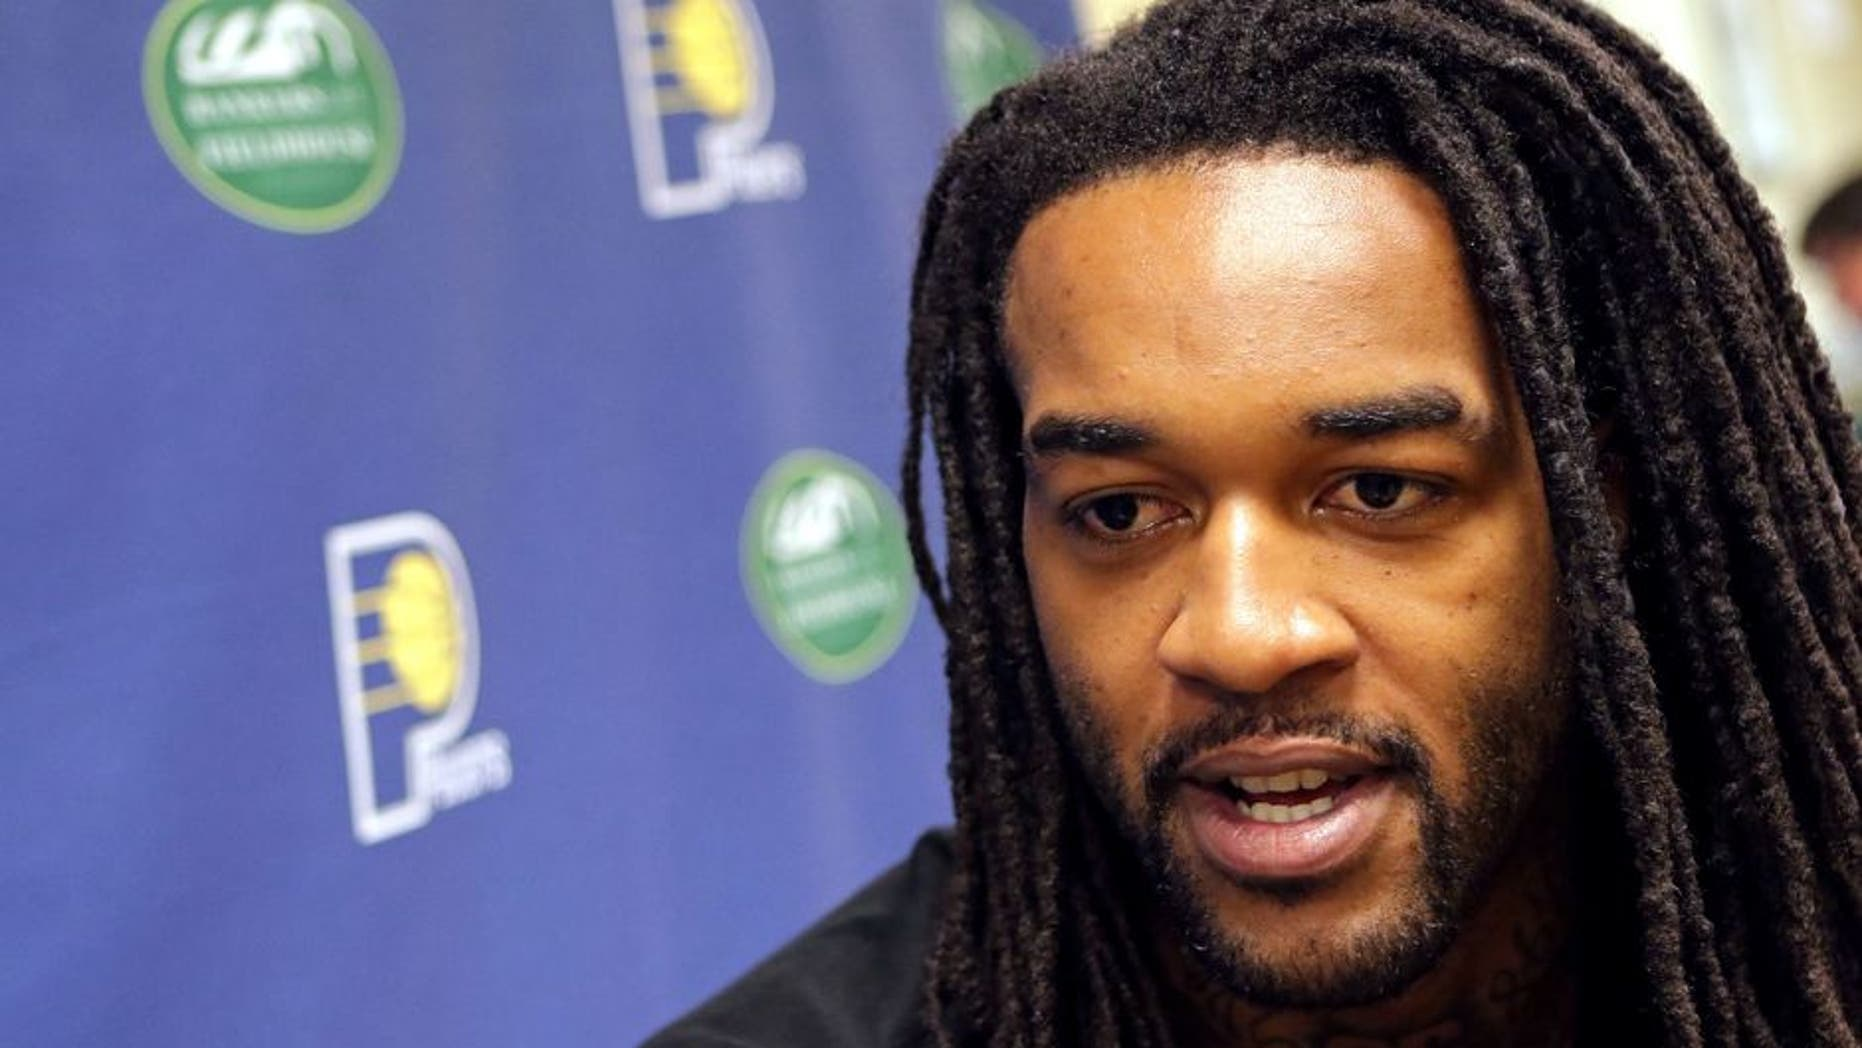 INDIANAPOLIS - JULY 14: Jordan Hill #27 of the Indiana Pacers speaks to the media at Bankers Life Fieldhouse on July 14, 2015 in Indianapolis, Indiana. NOTE TO USER: User expressly acknowledges and agrees that, by downloading and or using this Photograph, user is consenting to the terms and condition of the Getty Images License Agreement. Mandatory Copyright Notice: 2015 NBAE (Photo by Ron Hoskins/NBAE via Getty Images)